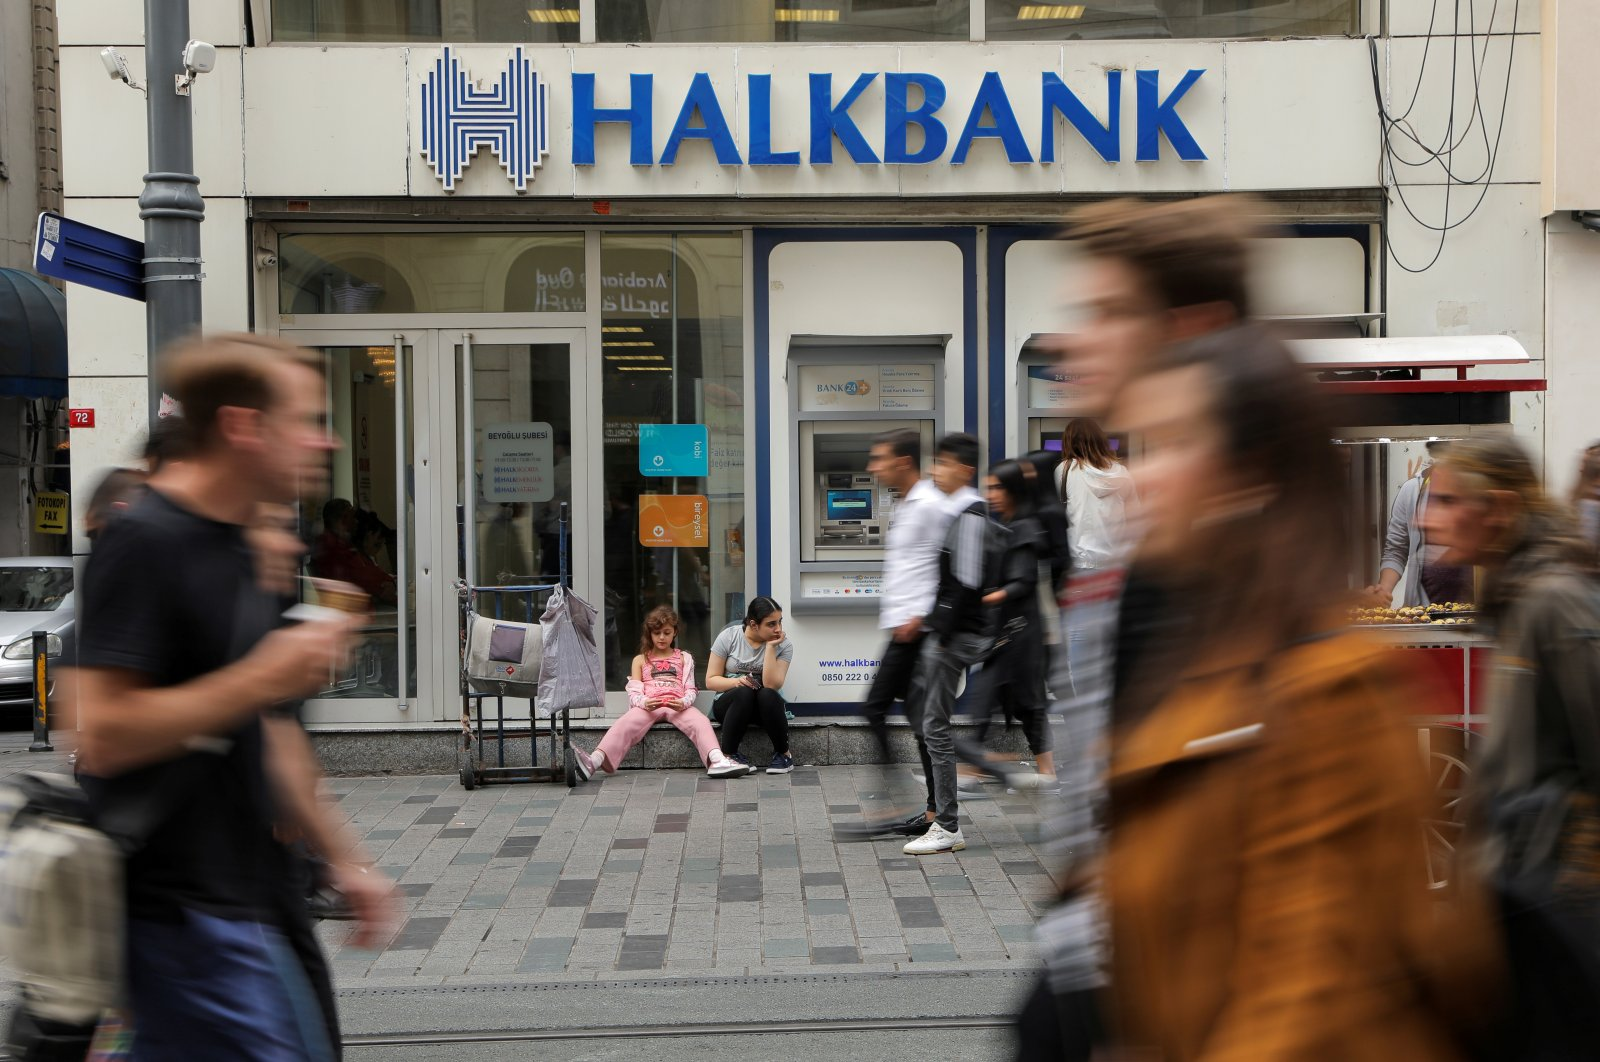 People walk by a Halkbank branch in central Istanbul, Turkey, Oct. 16, 2019. (Reuters Photo)